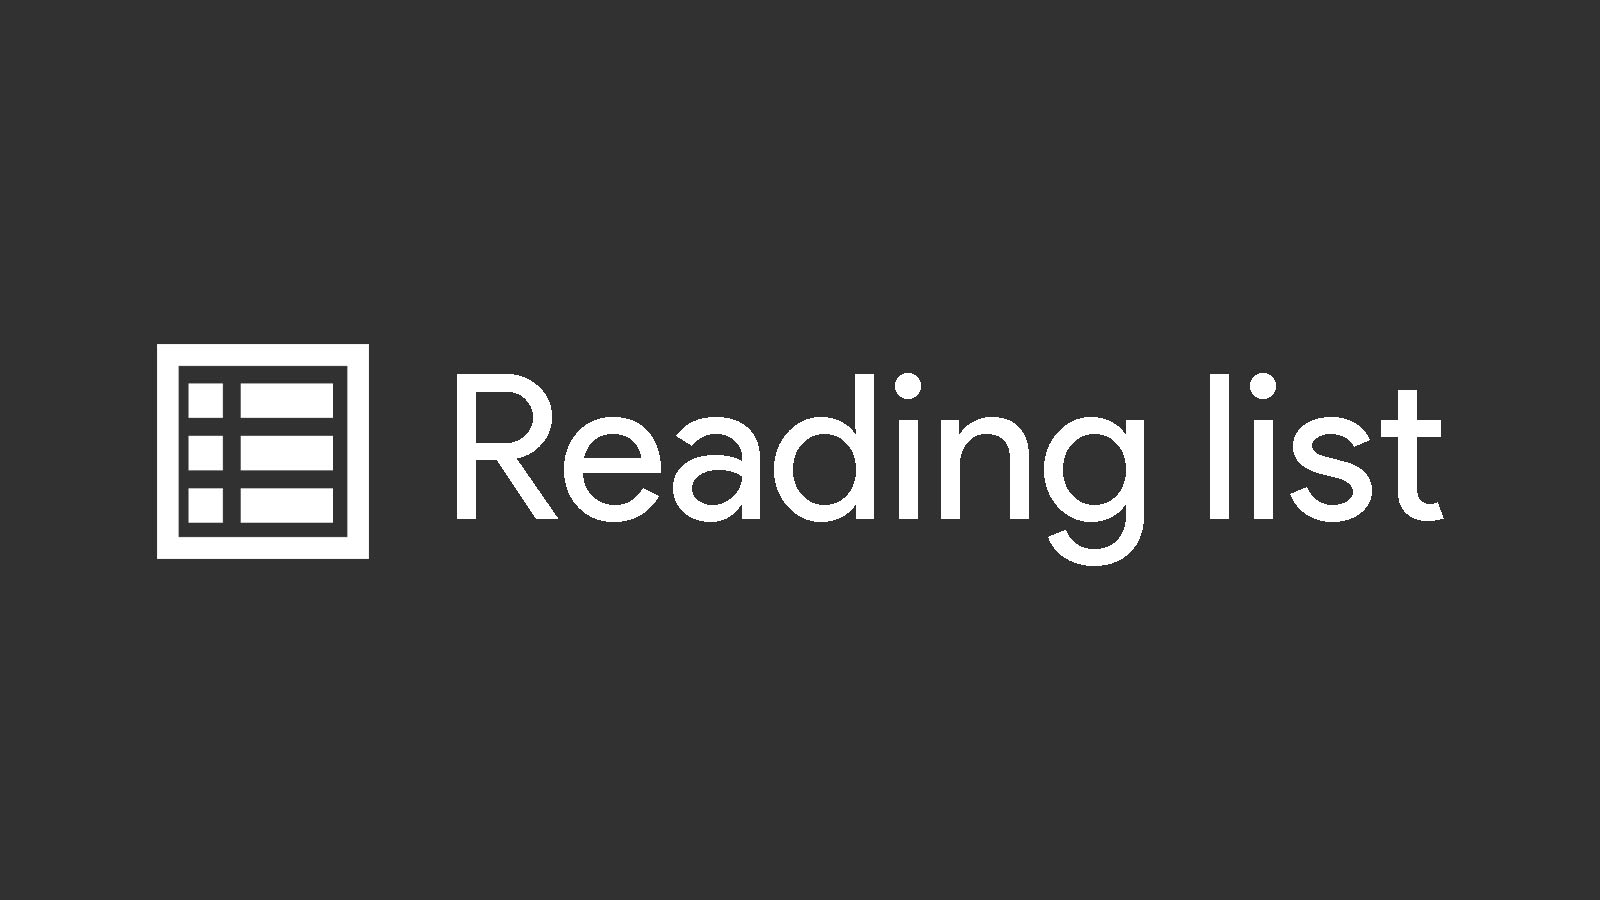 Not everyone loves Chrome's new 'Reading list' feature, so now it can be hidden entirely